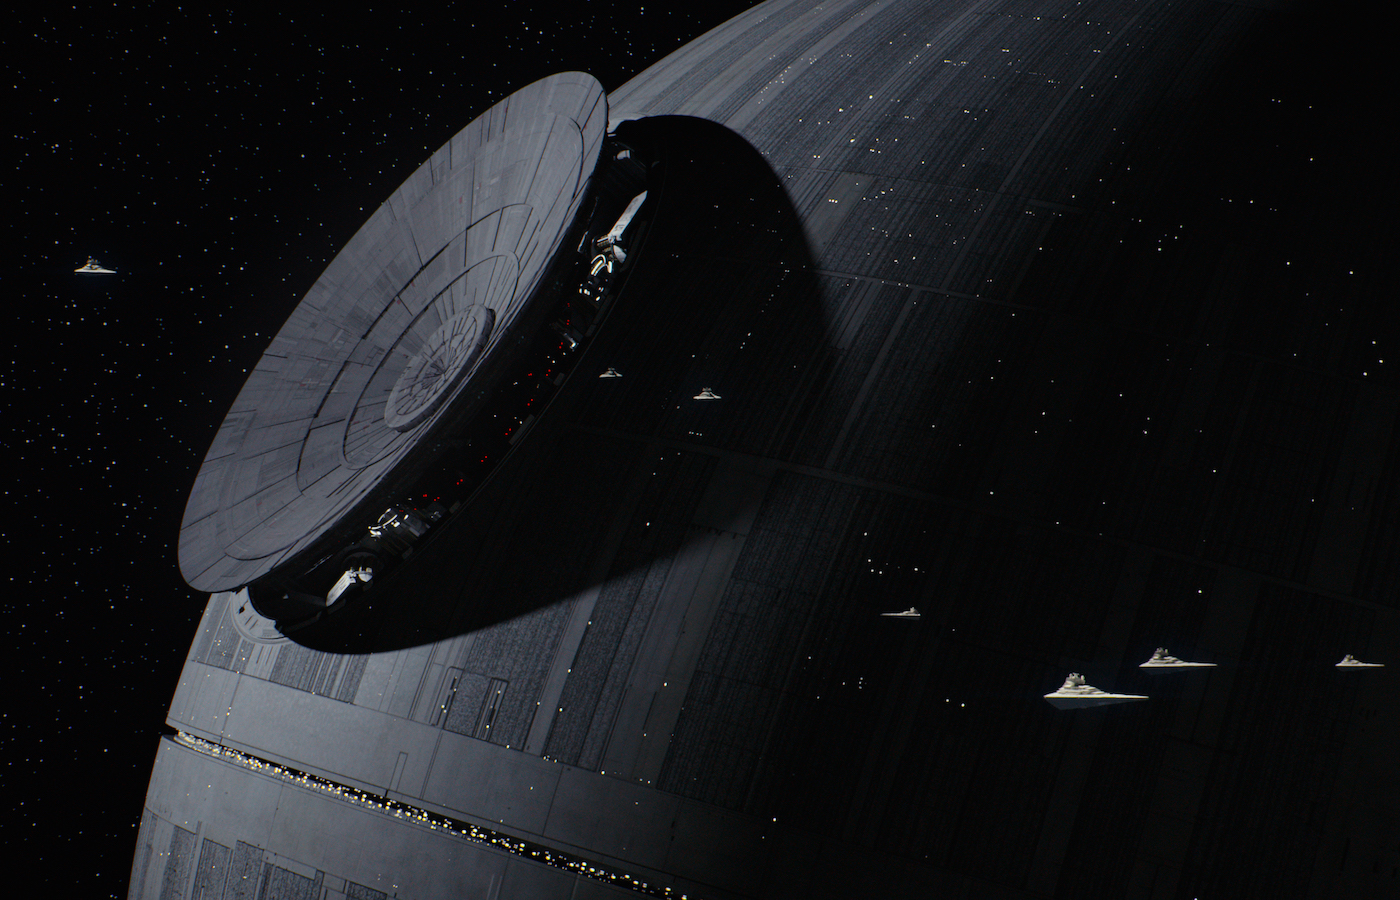 rogue-one-a-star-wars-story-death-star.jpg